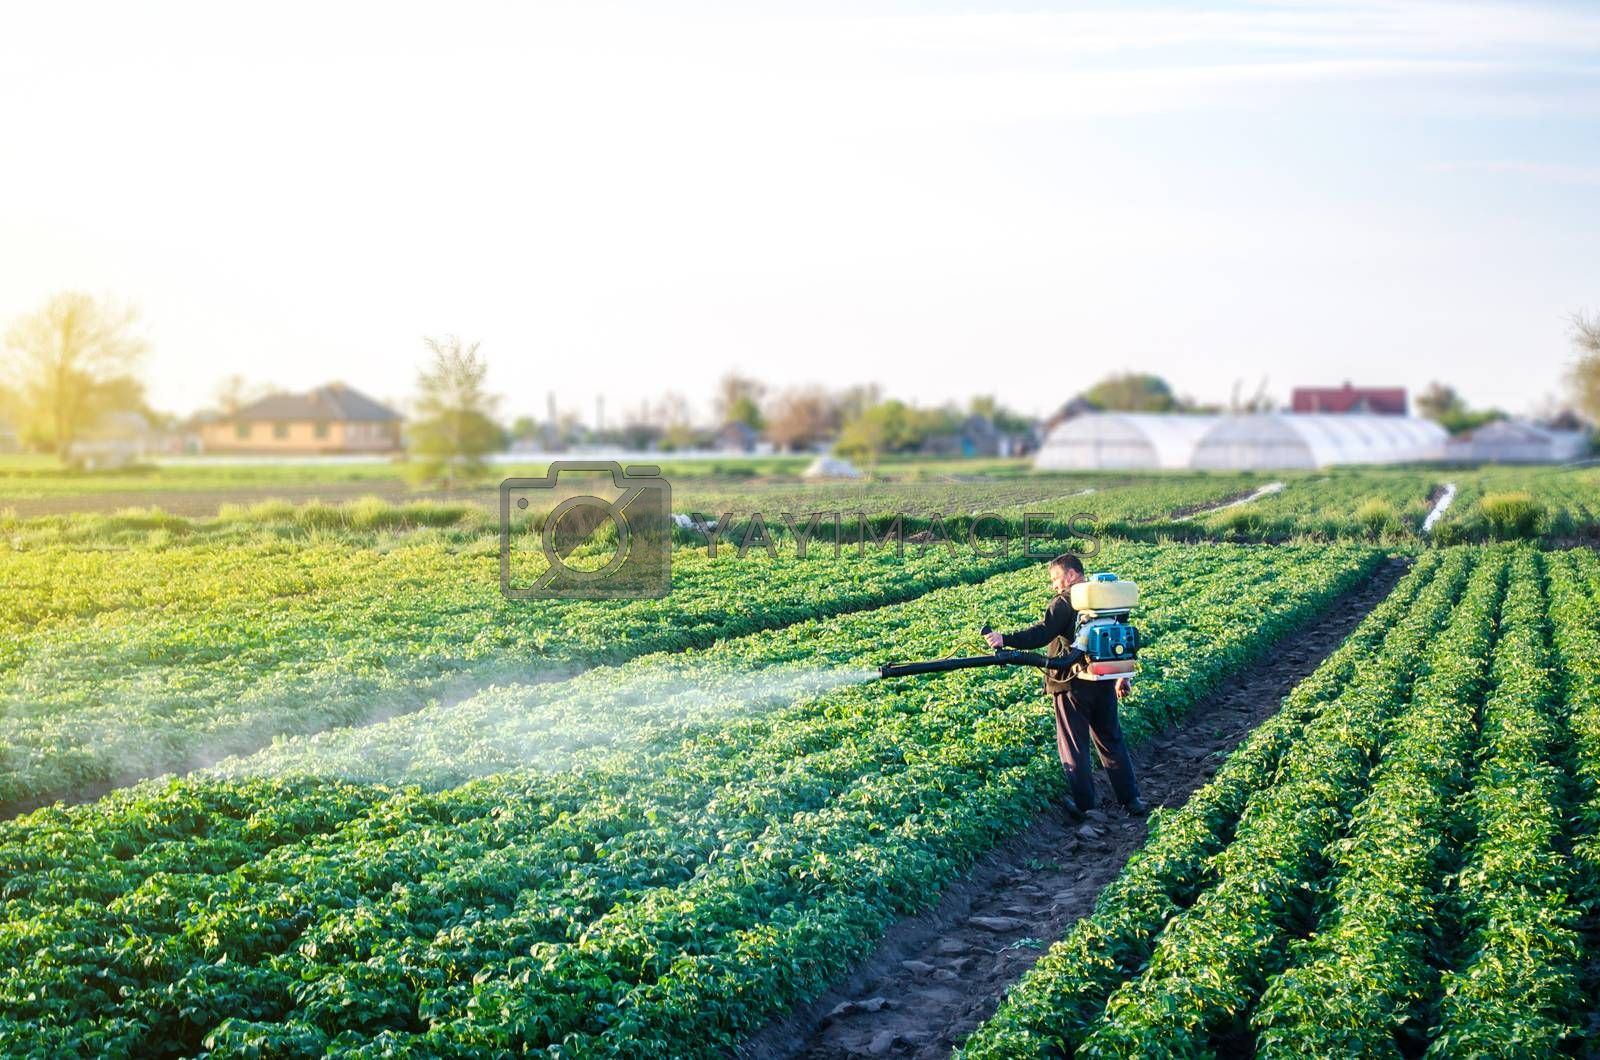 Farmer with a mist sprayer blower processes the potato plantation. Protection and care. Fumigator fogger. Environmental damage and chemical pollution. Use of industrial chemicals to protect crops.